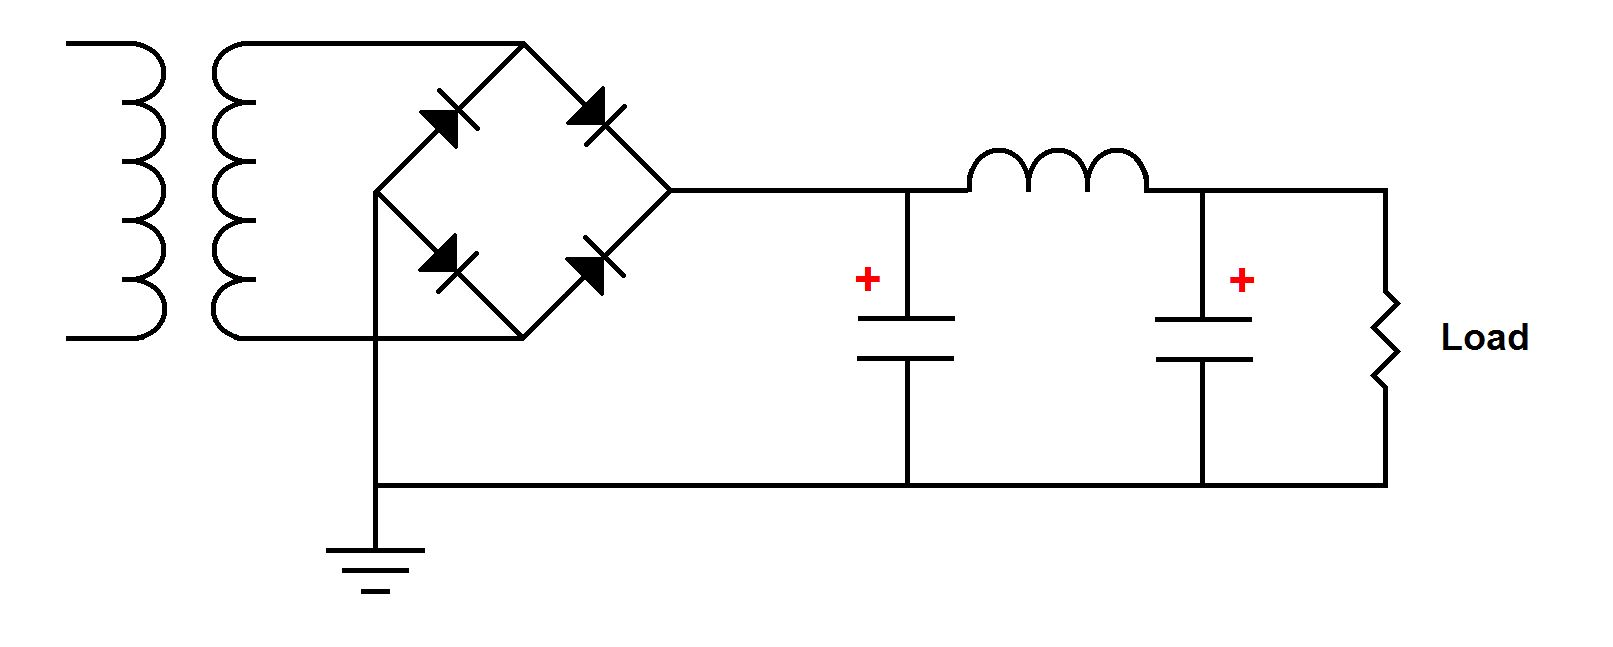 Rsd Academy Learn For Free Electronics Technology Analog Unregulator Power Supply This Is At Best An Over Simplification The Following Circuit A Filtered Unregulated With Typical Capacitor Inductor Filter